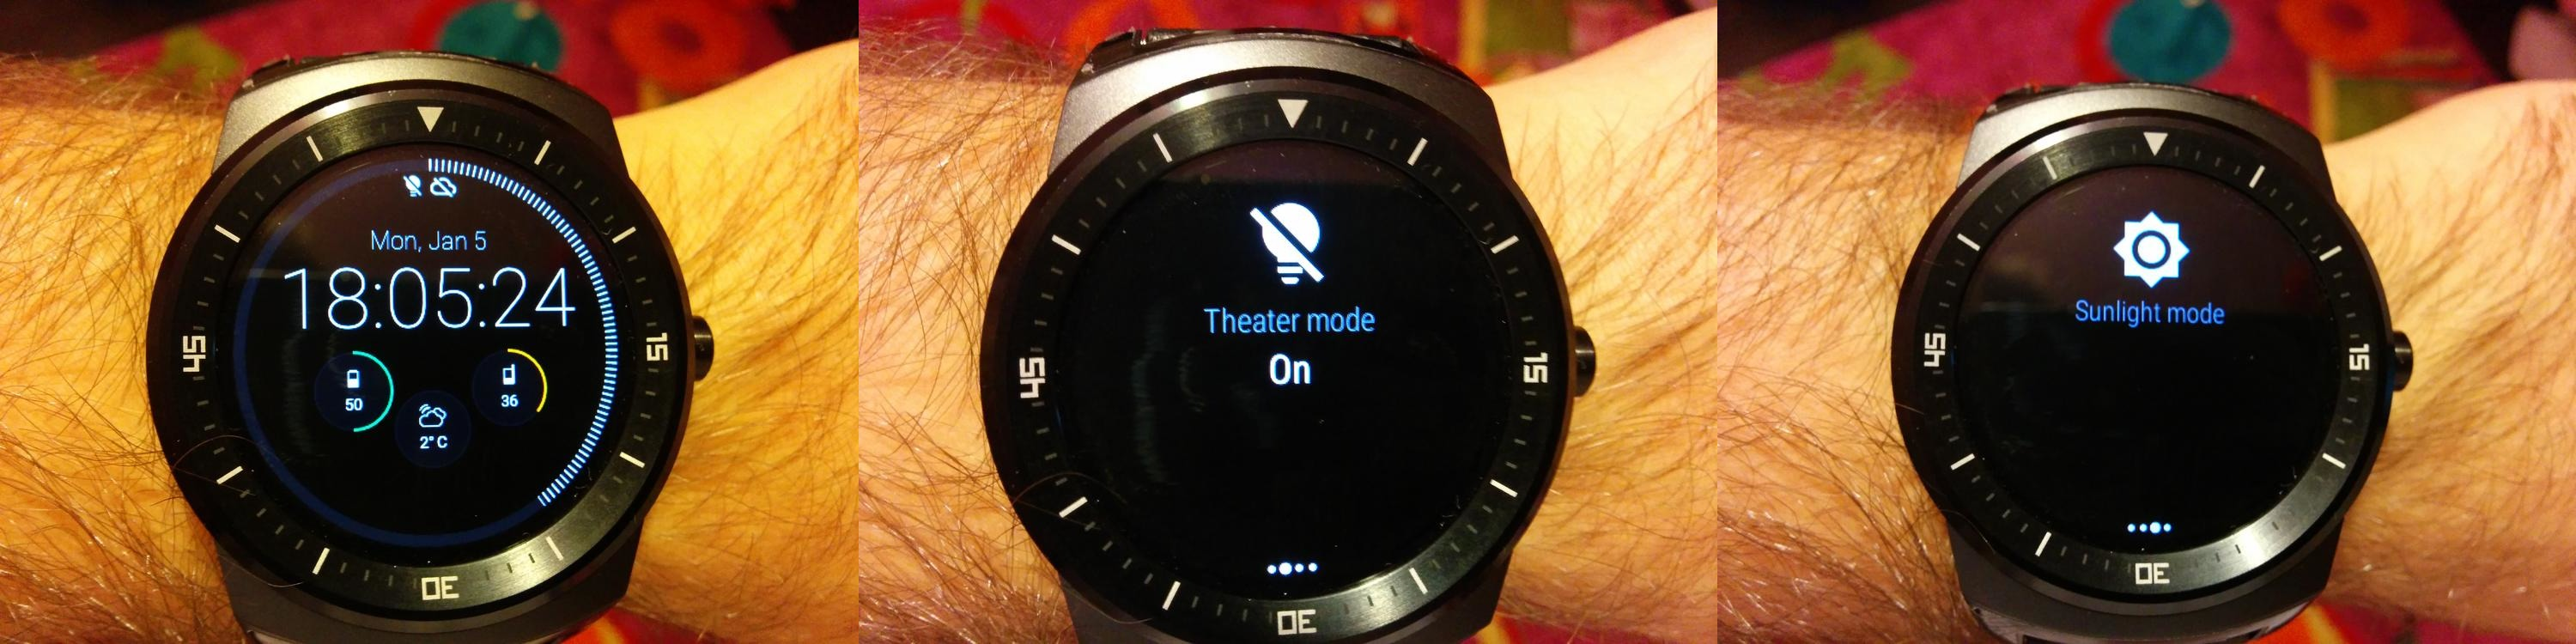 LG_G_watch_R_theater_mode_5